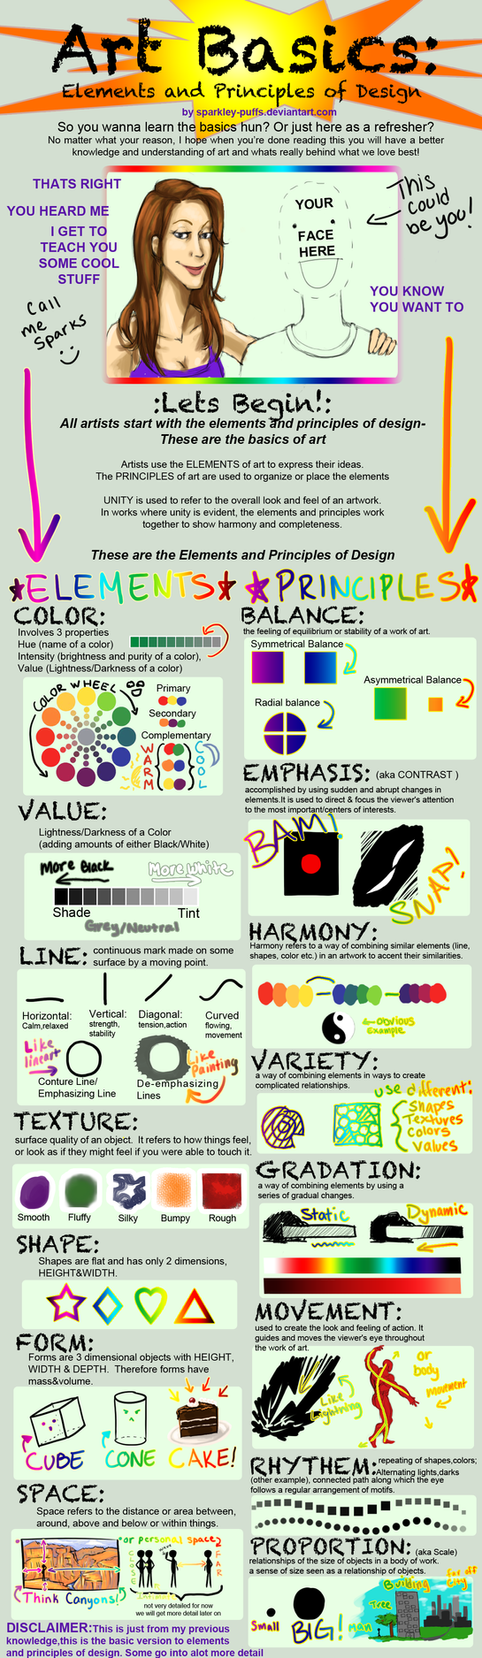 The Elements And Principles Of Visual Design : Elements principles of design by thecuddlykoalawhale on